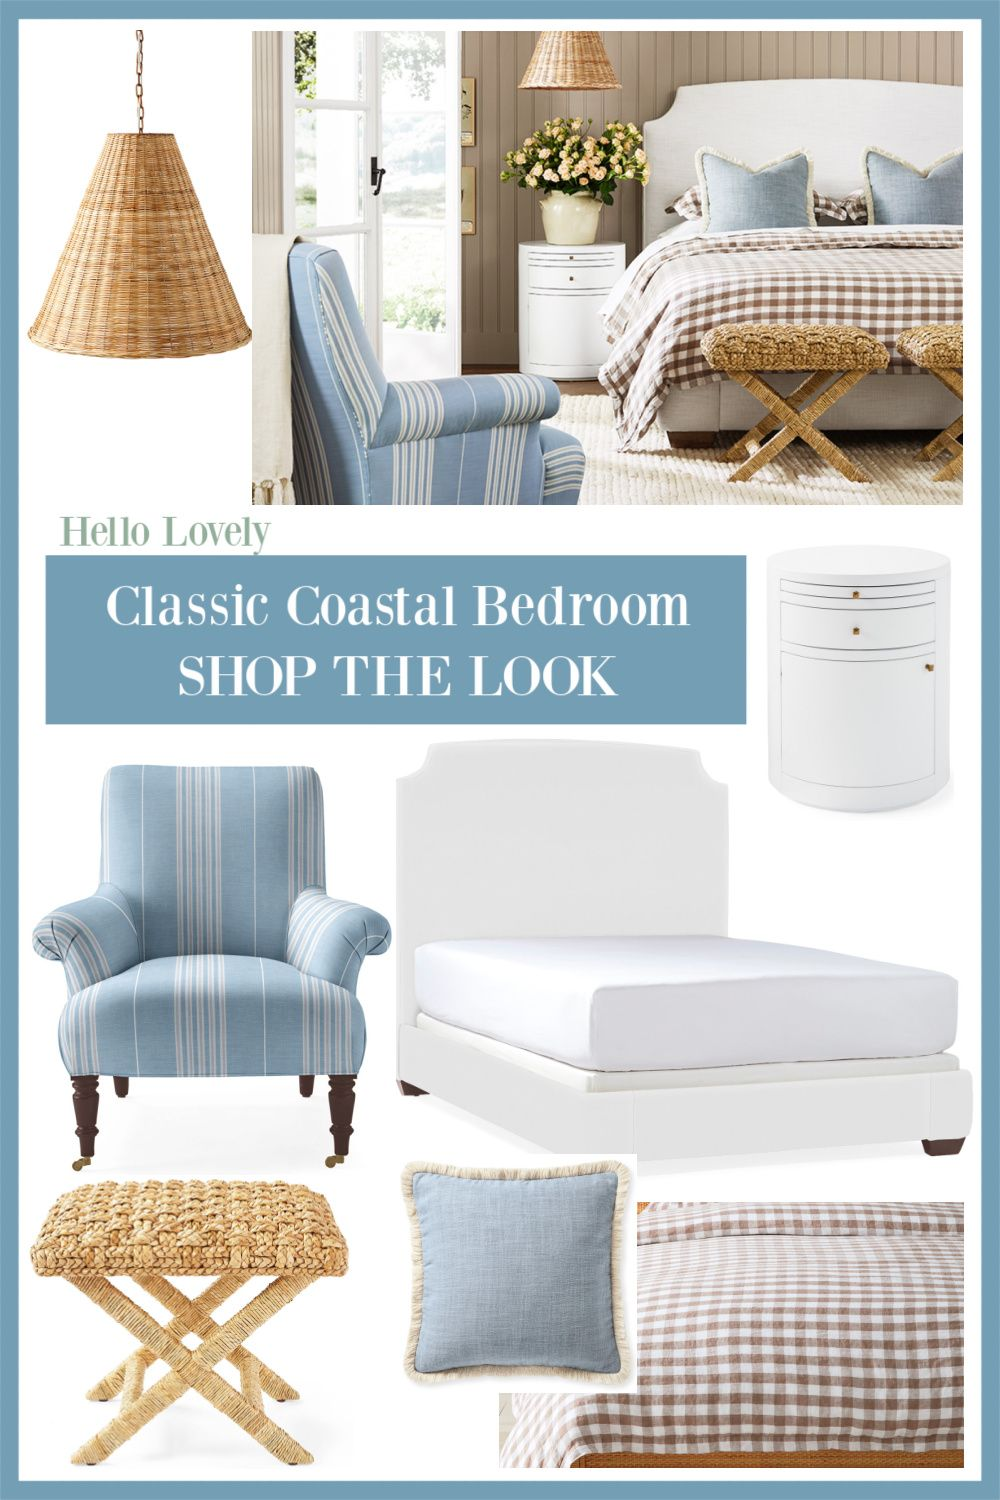 Coastal Homes, Timeless Classic Interiors & Freshened Traditional Style to Inspire - Hello Lovely